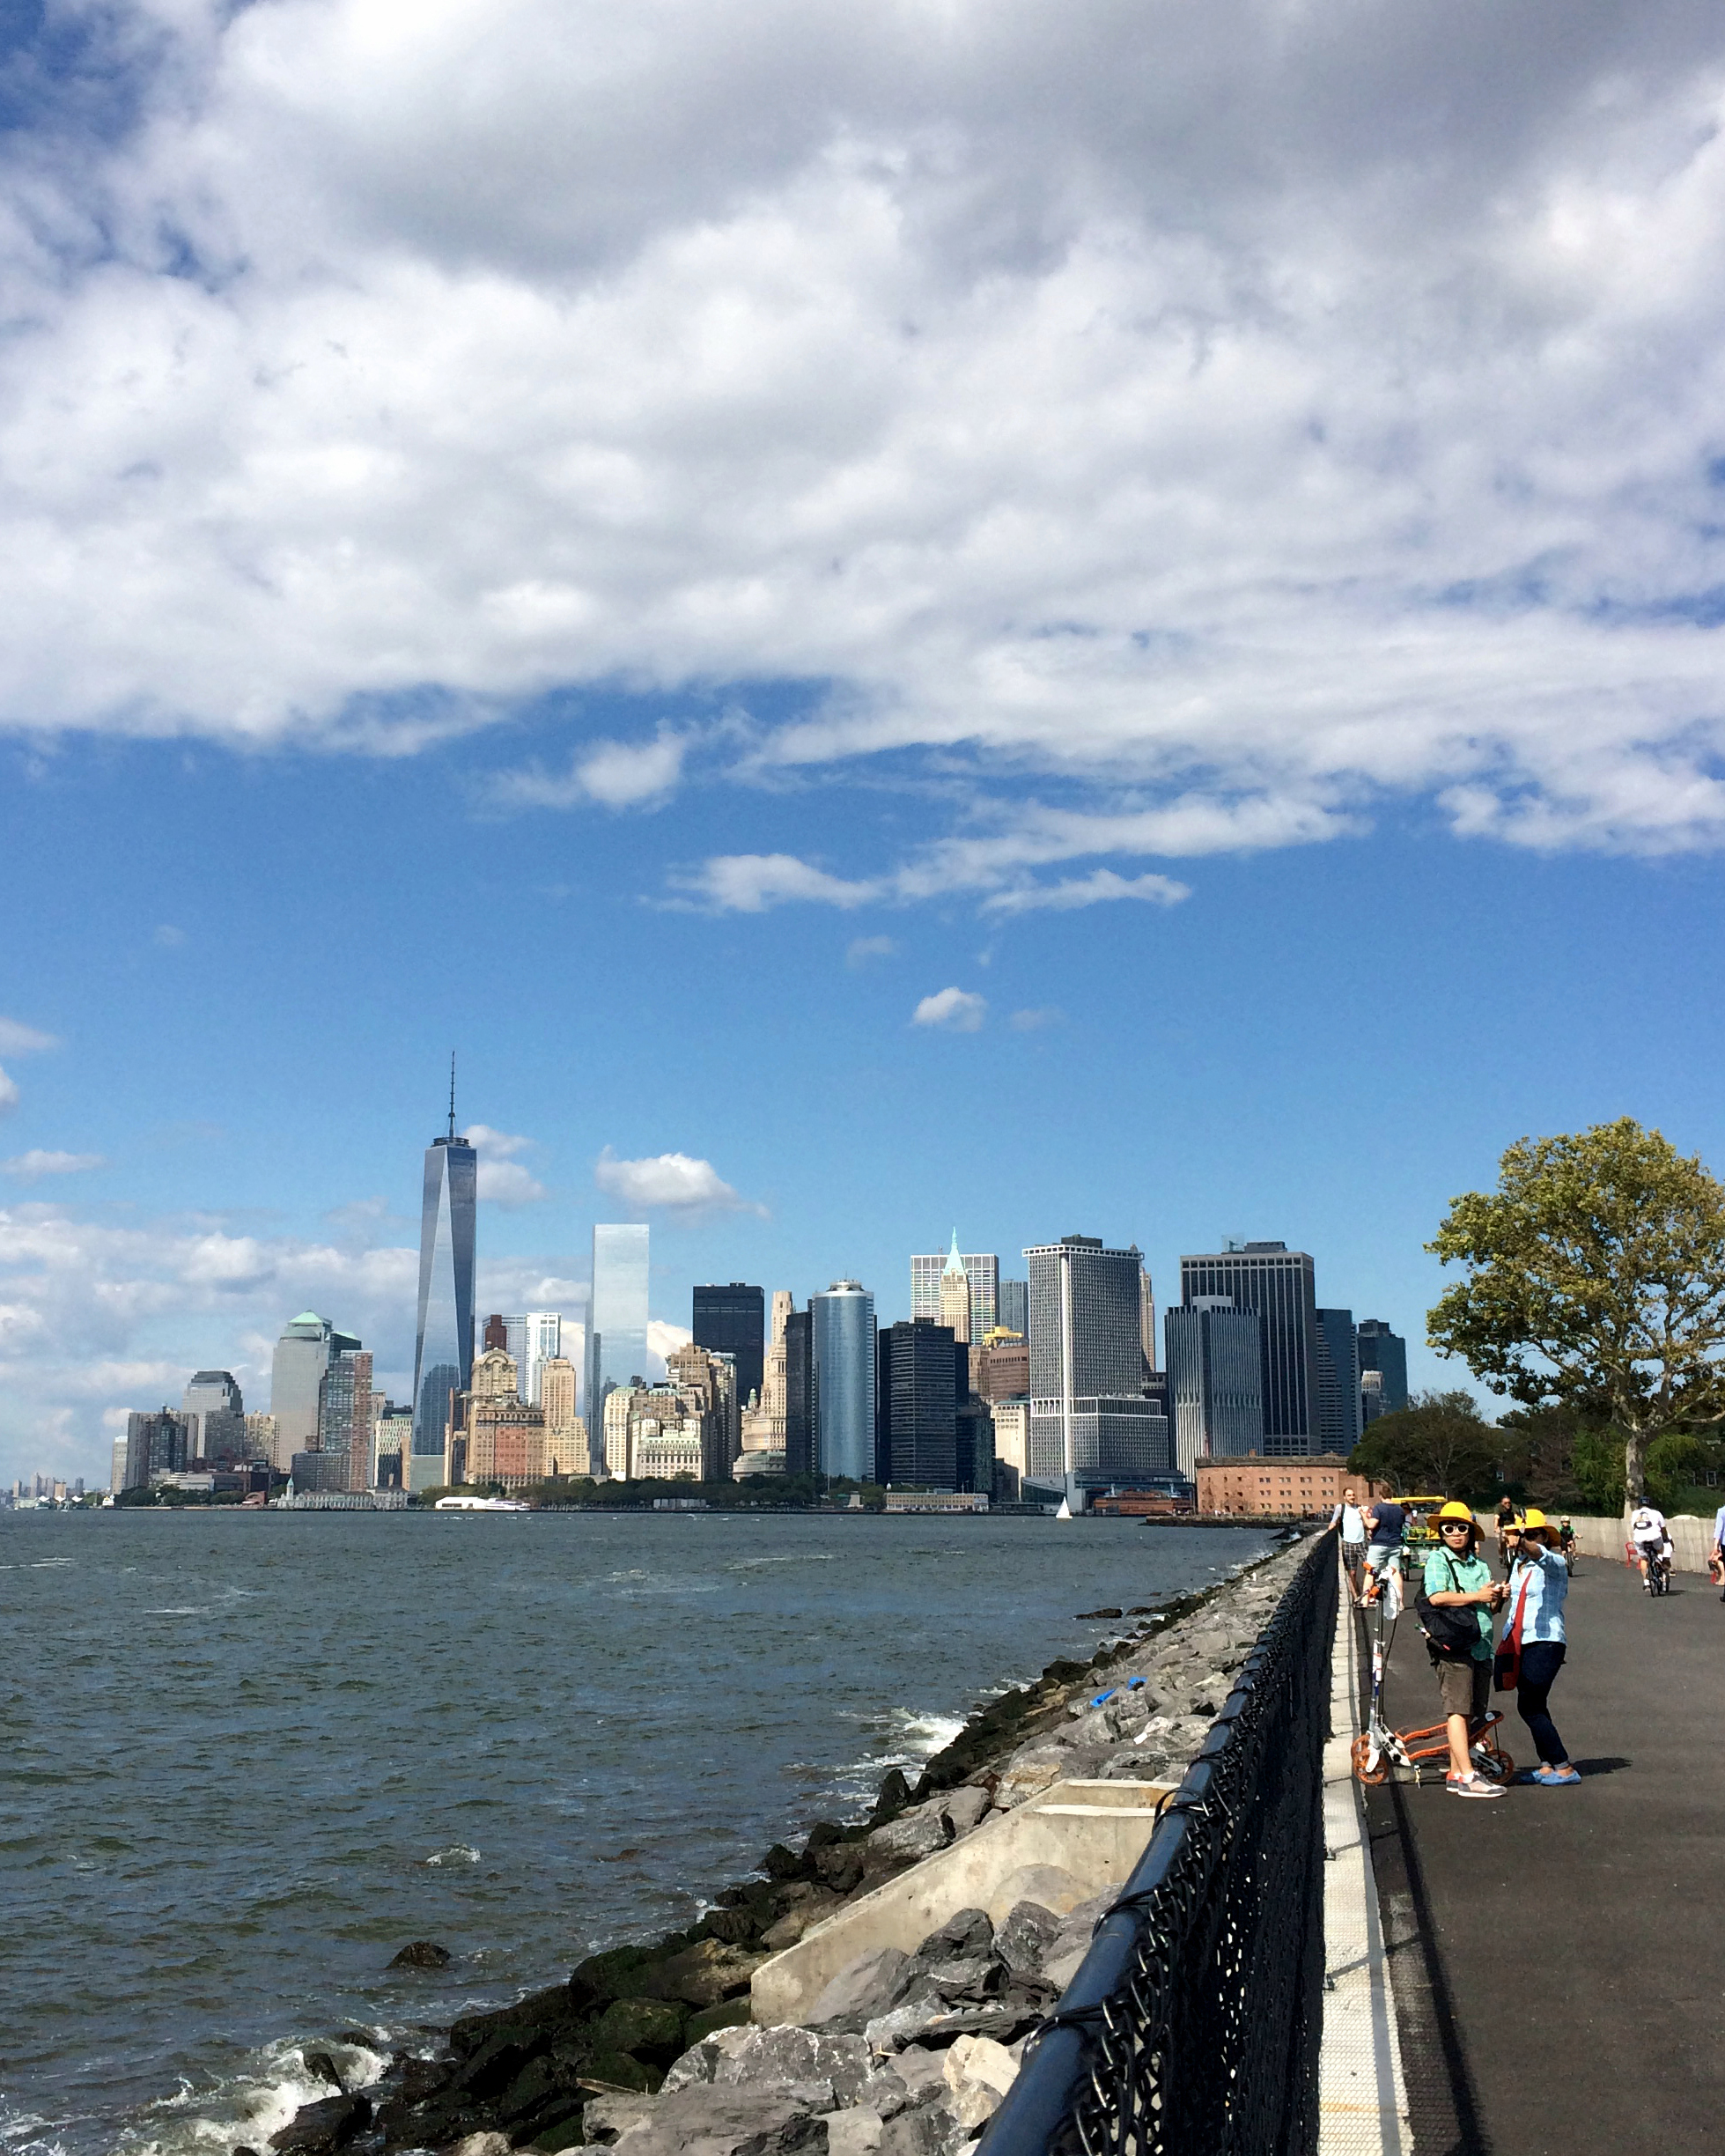 nyc-proposal-spot-governors-island-1114.jpg